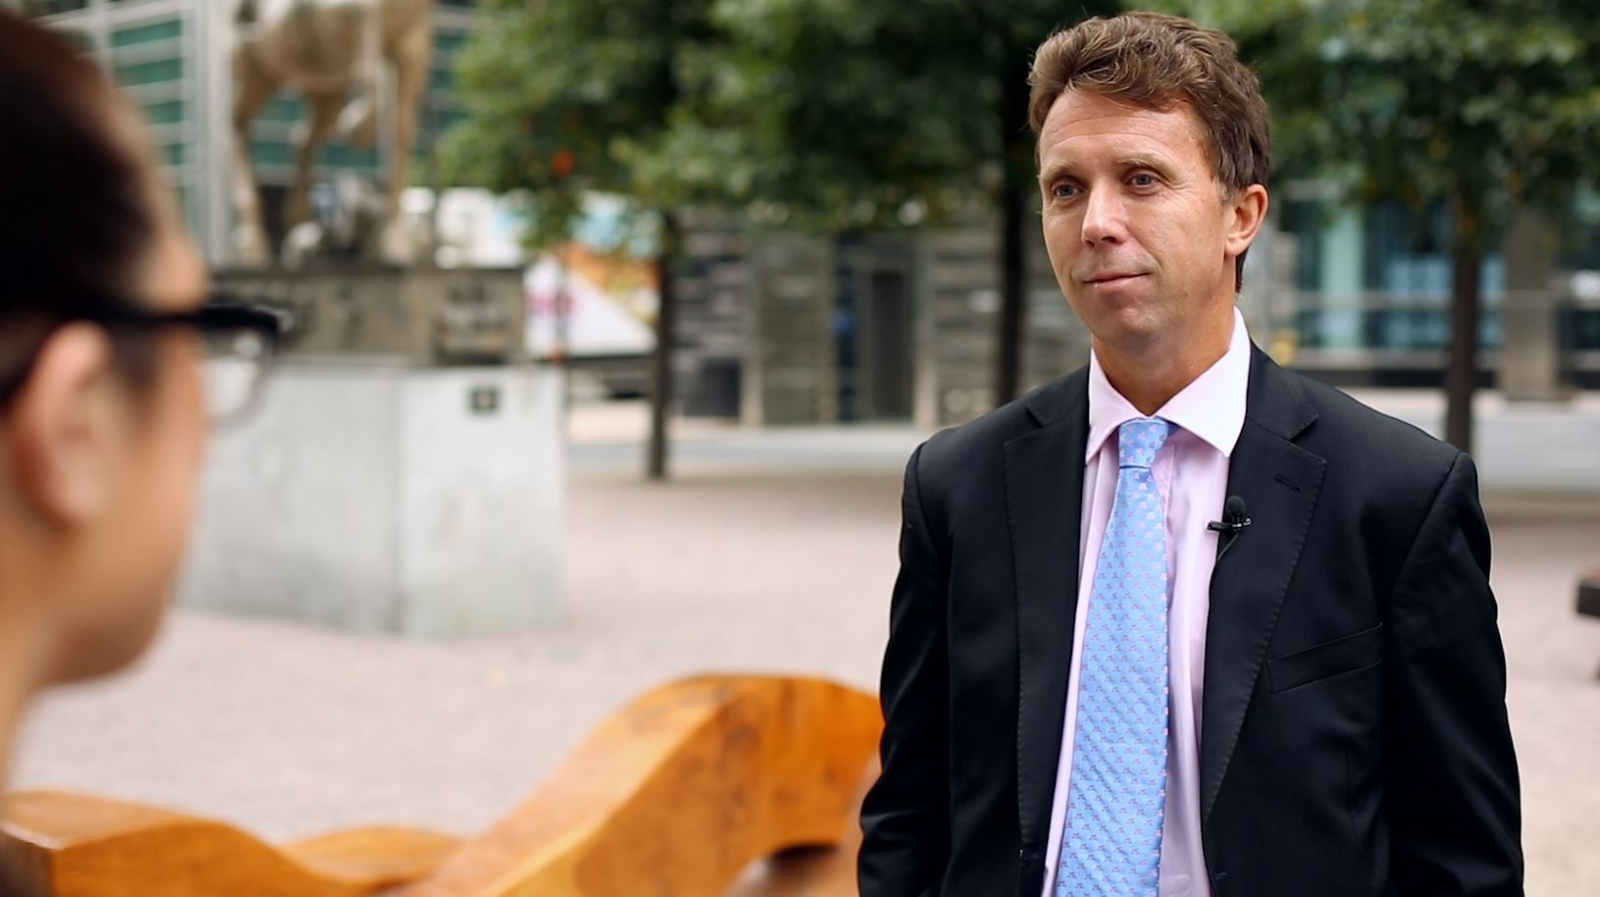 Scottish Independence: Citi Warns Yes Campaign Has Not Tackled Biggest Questions over the Economy